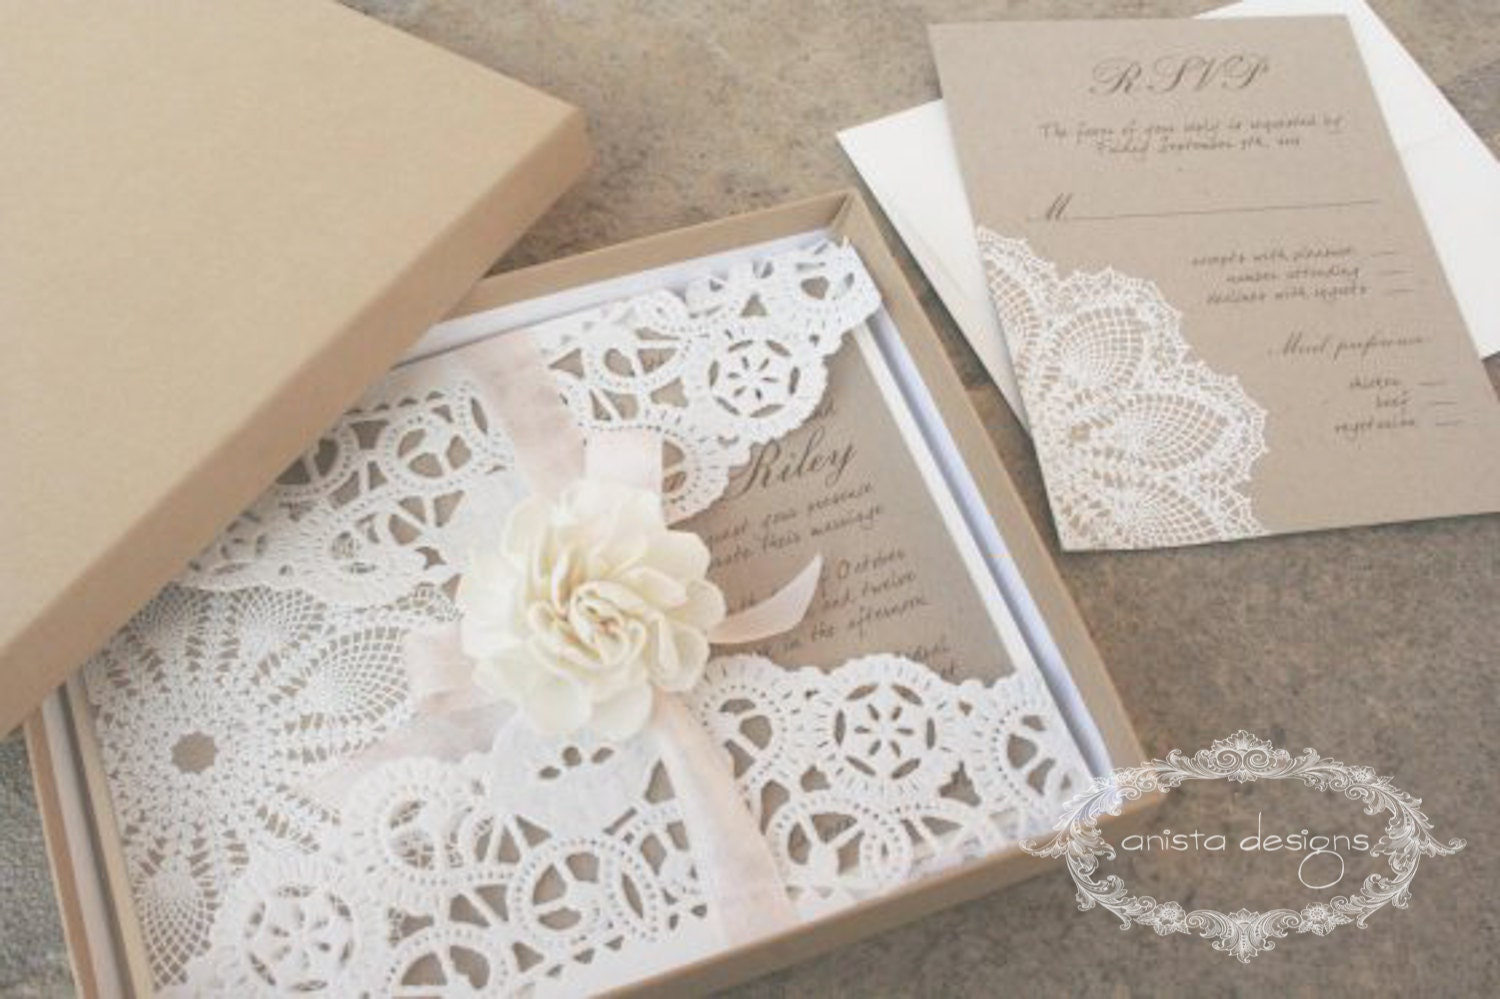 SALE: vintage wedding invitation Lace doily featured in